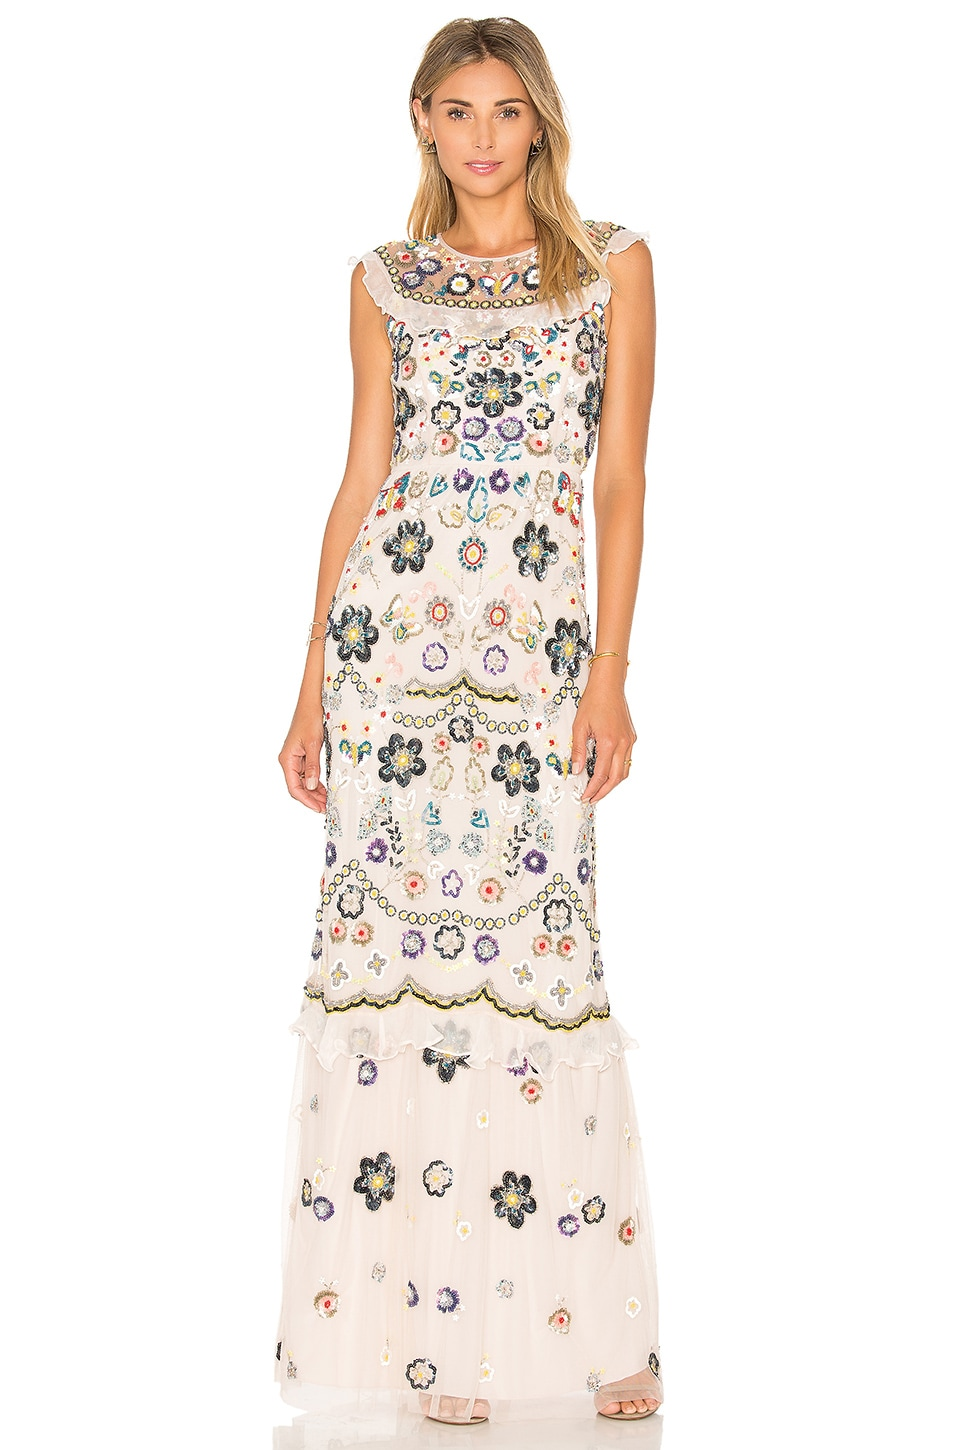 Needle & Thread Butterfly Garden Maxi Dress in Petal Pink